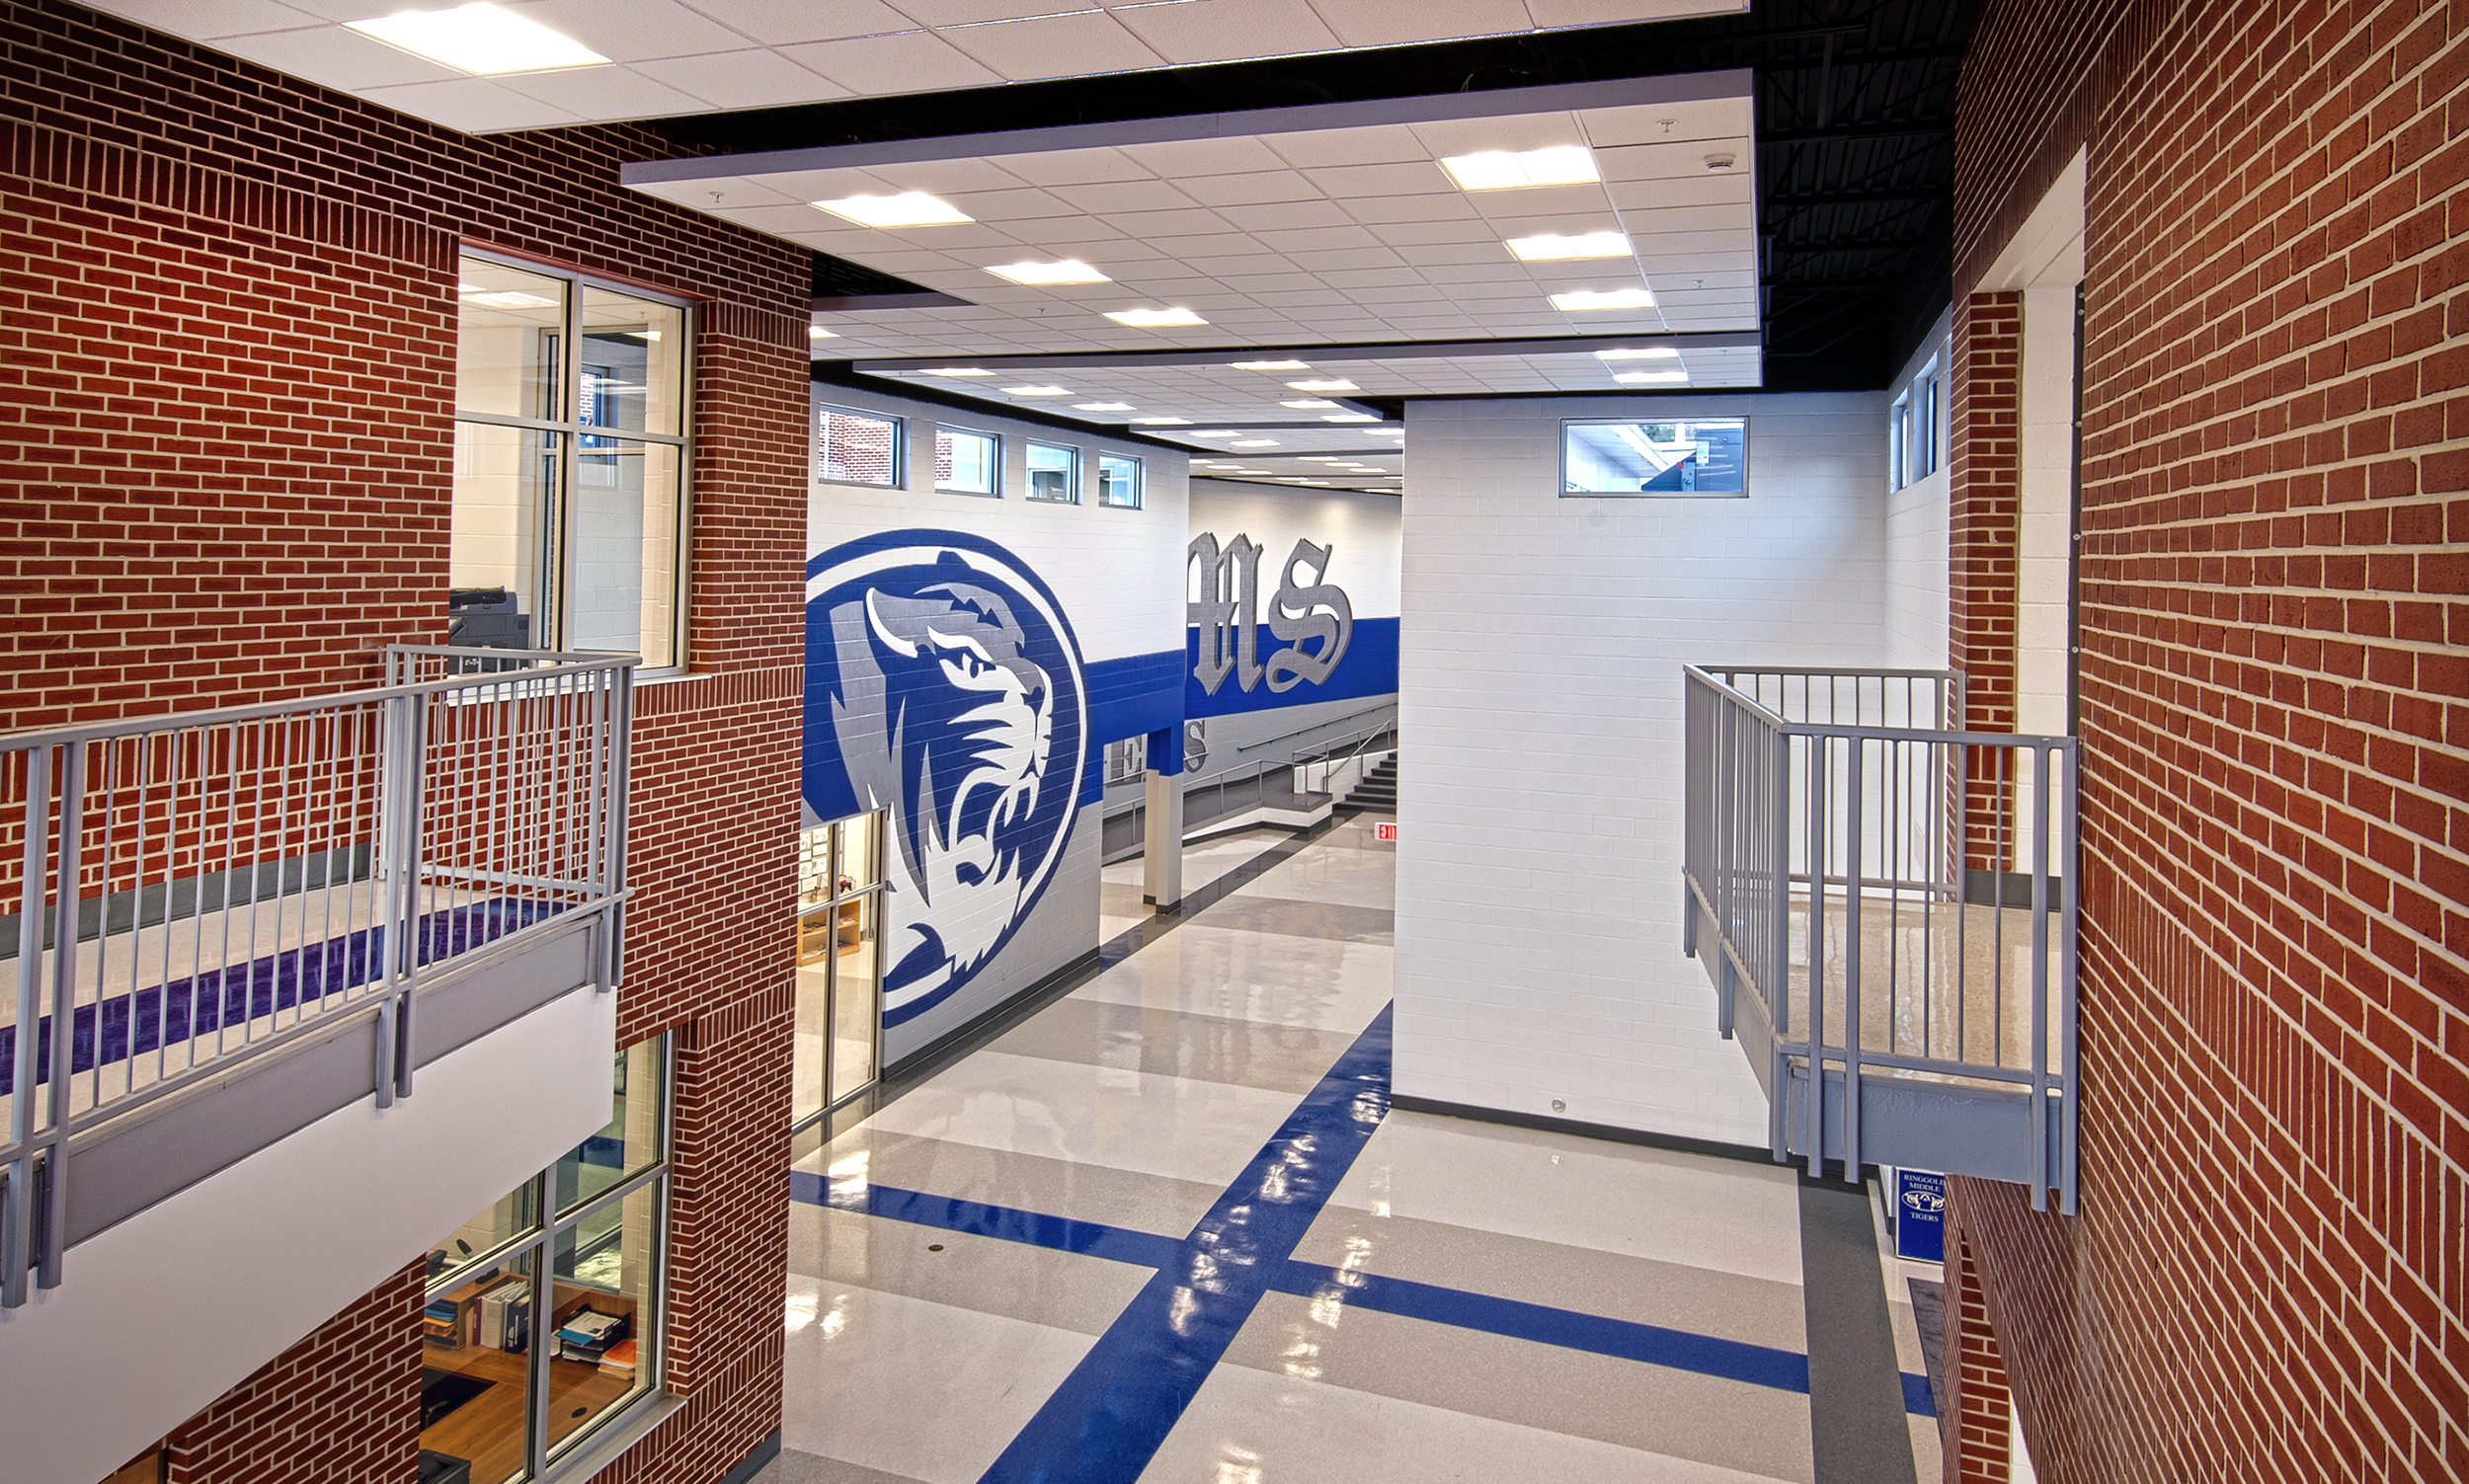 Ringgold Middle School   After a tornado severely damaged the Middle School in 2011 this new 42,000 sf 8th Grade Wing was constructed, providing 22 classrooms including art, chorus, and band.  The design of the addition is part of a new master plan for future expansion.